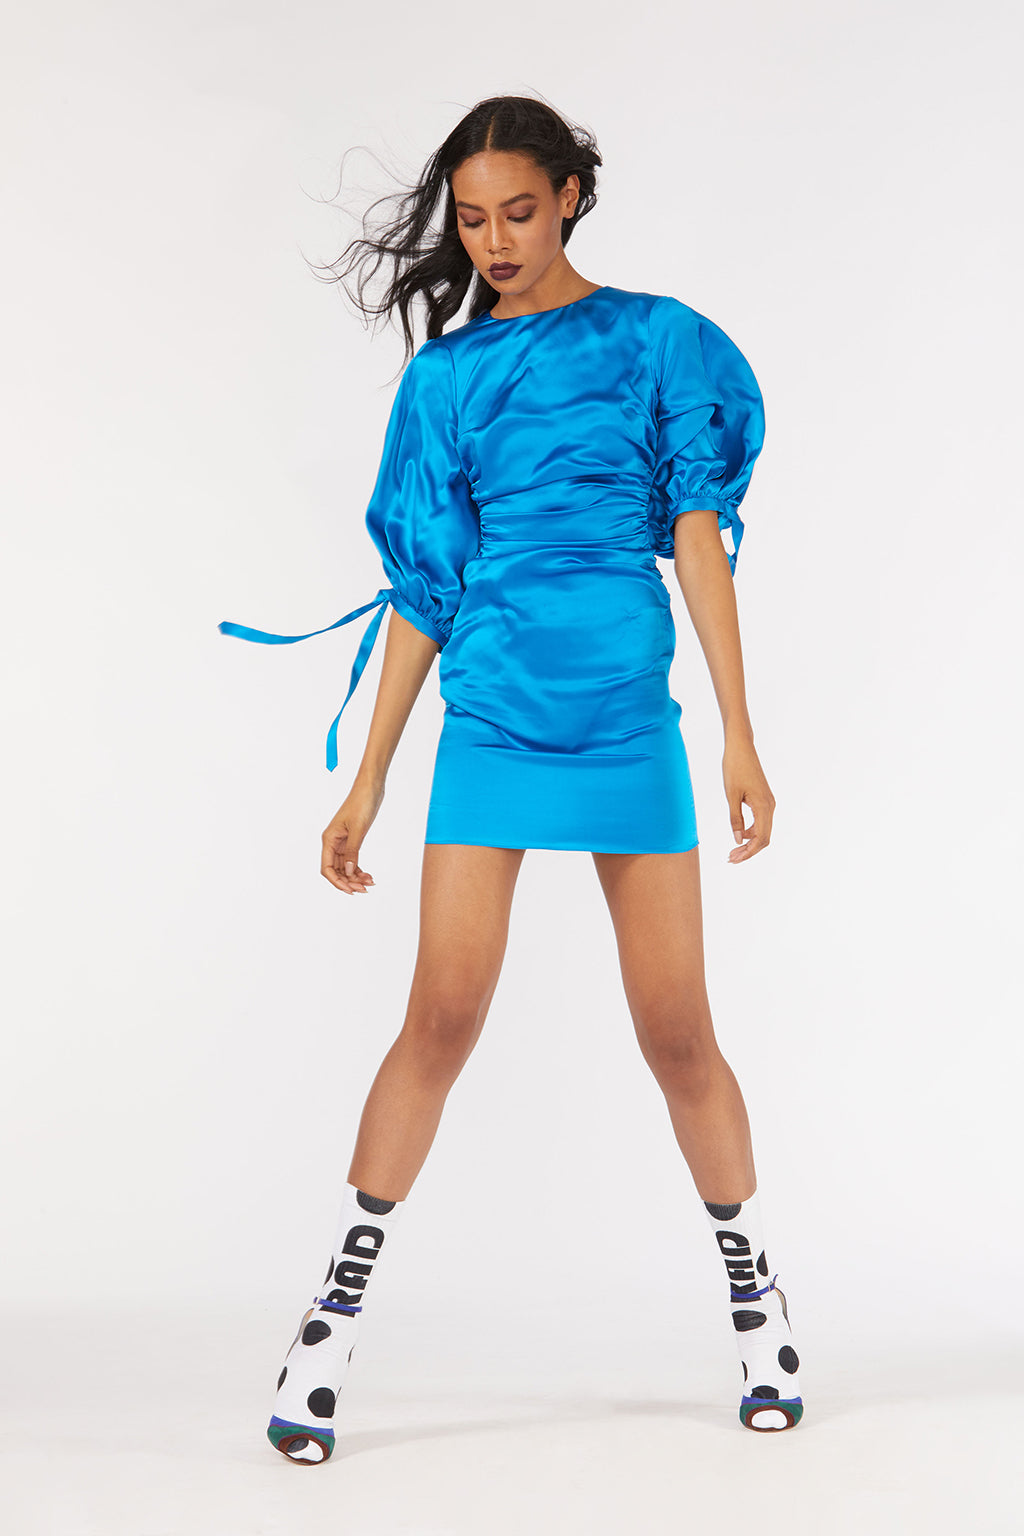 Cynthia Rowley Fall 2018 look 11 featuring a bright blue satin mini dress with oversize puff sleeves.